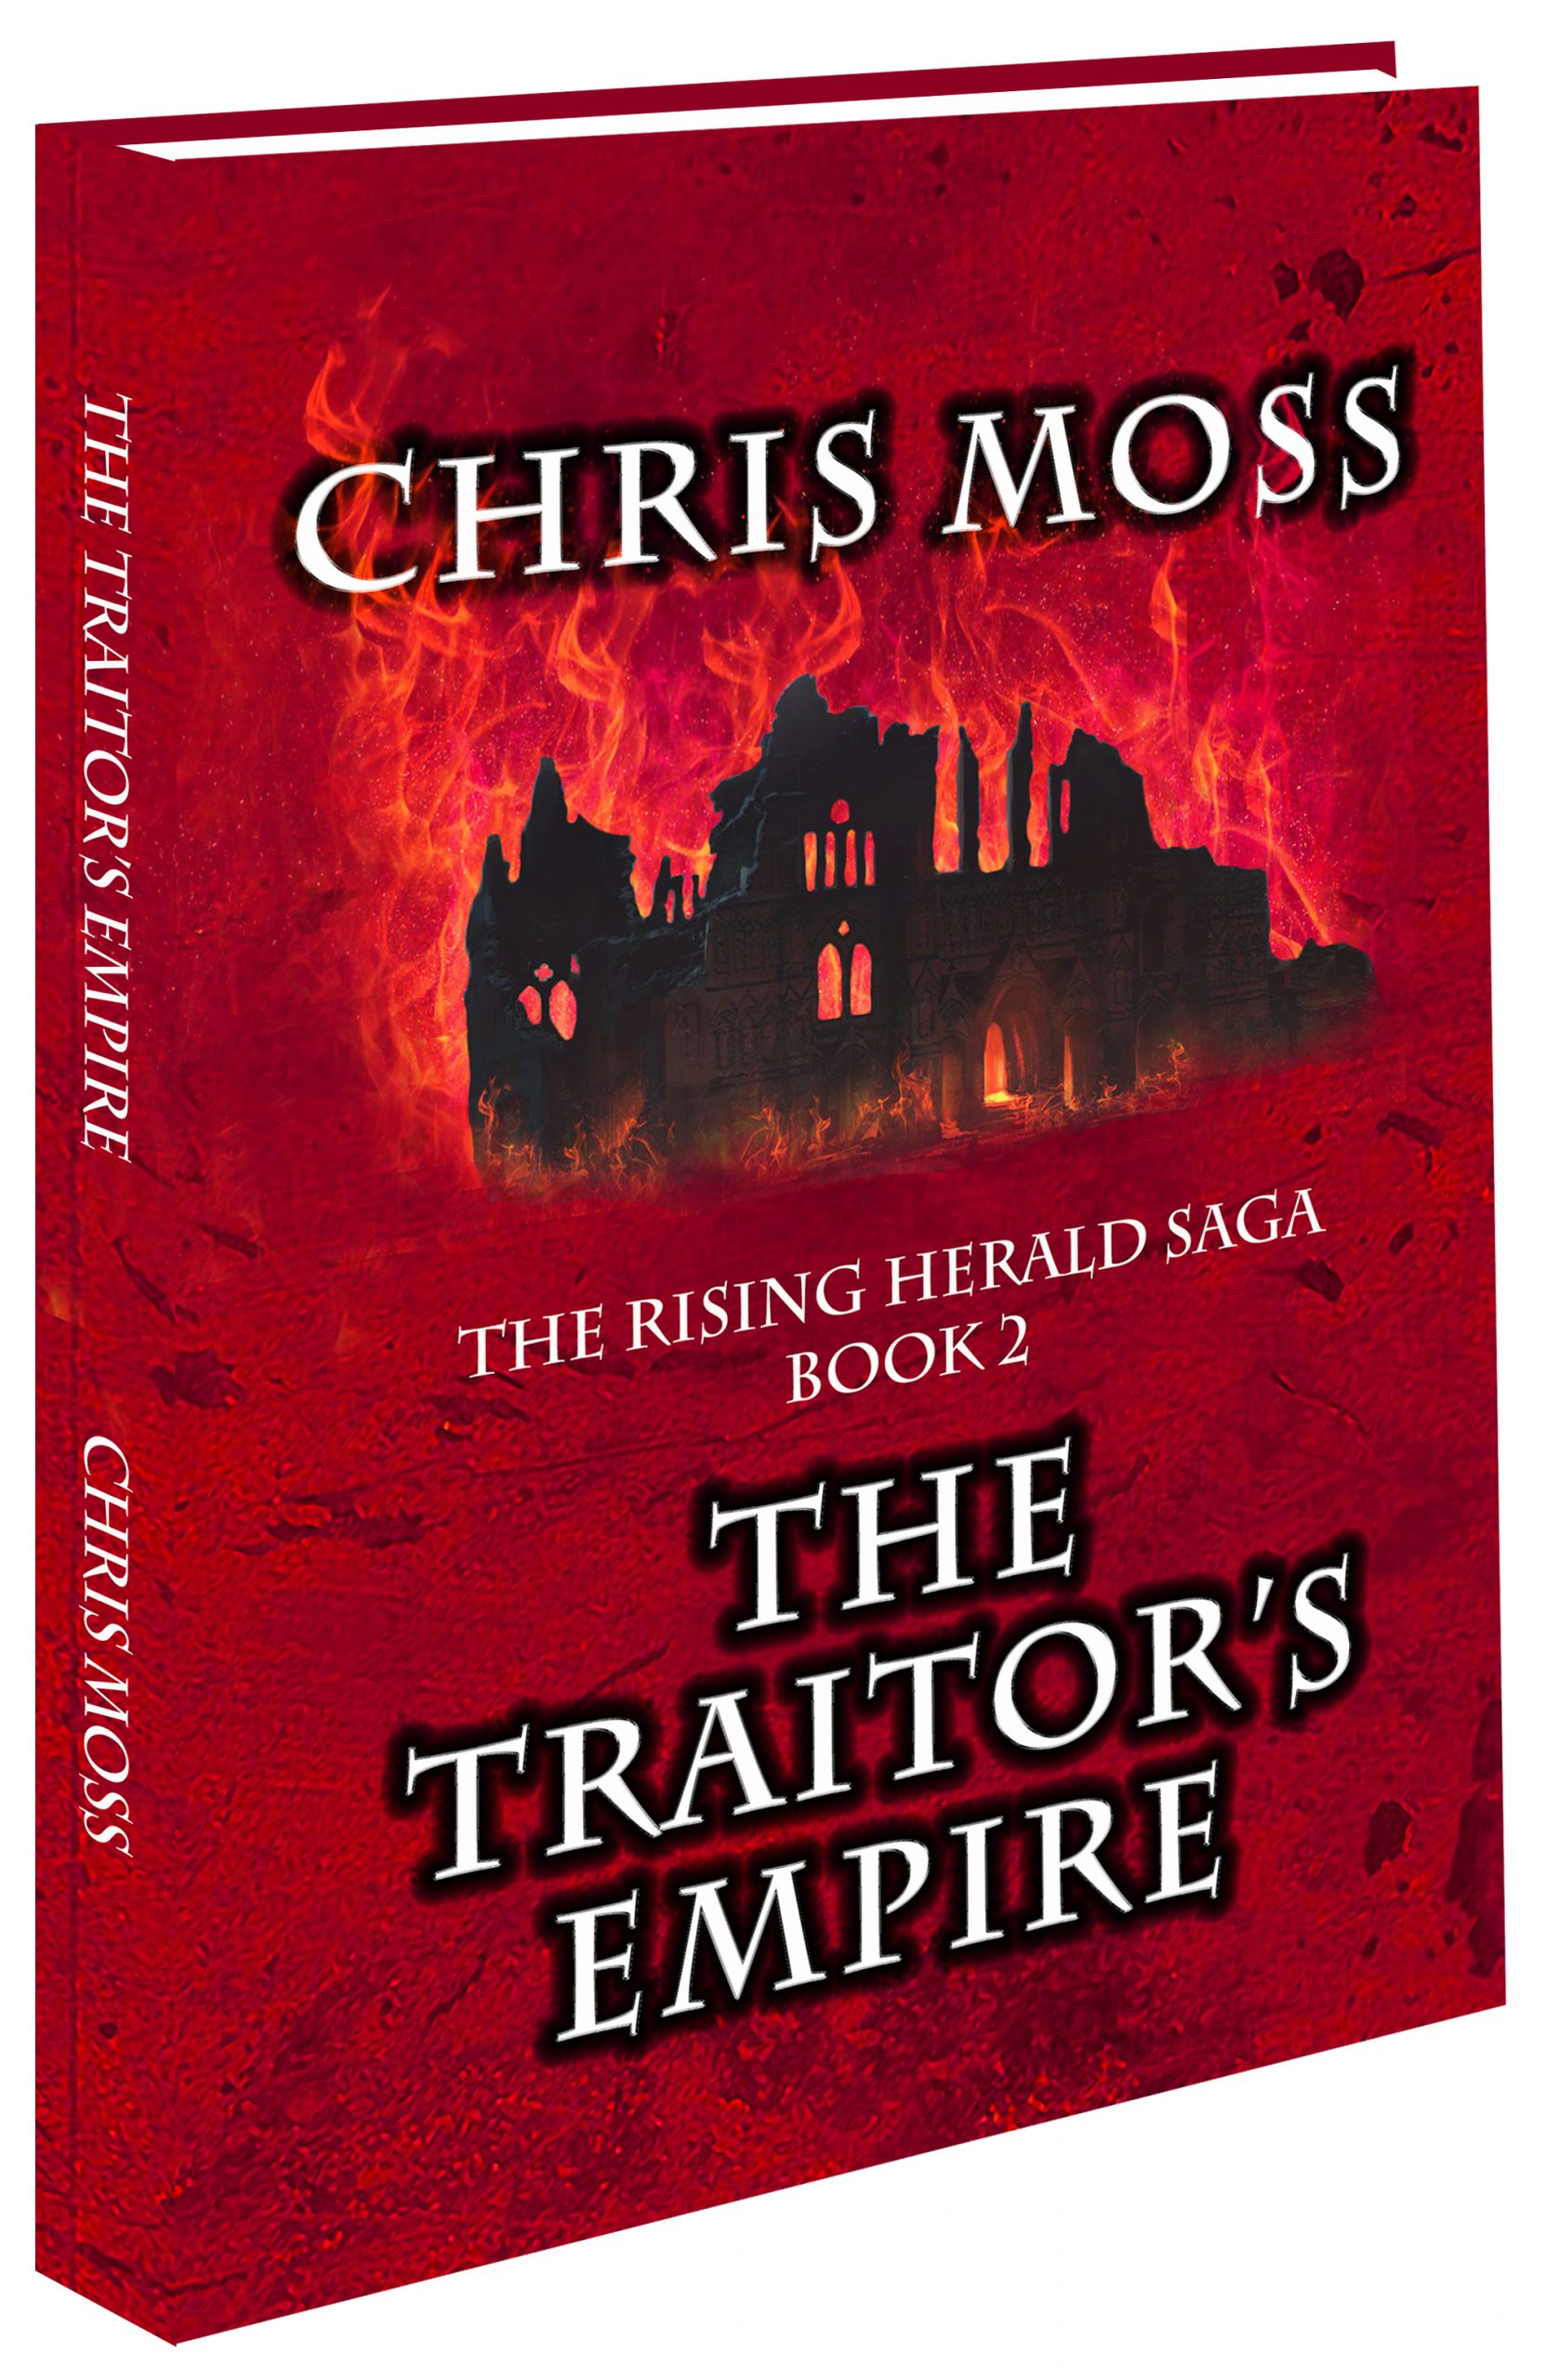 The Traitor's Empire Cover ISO